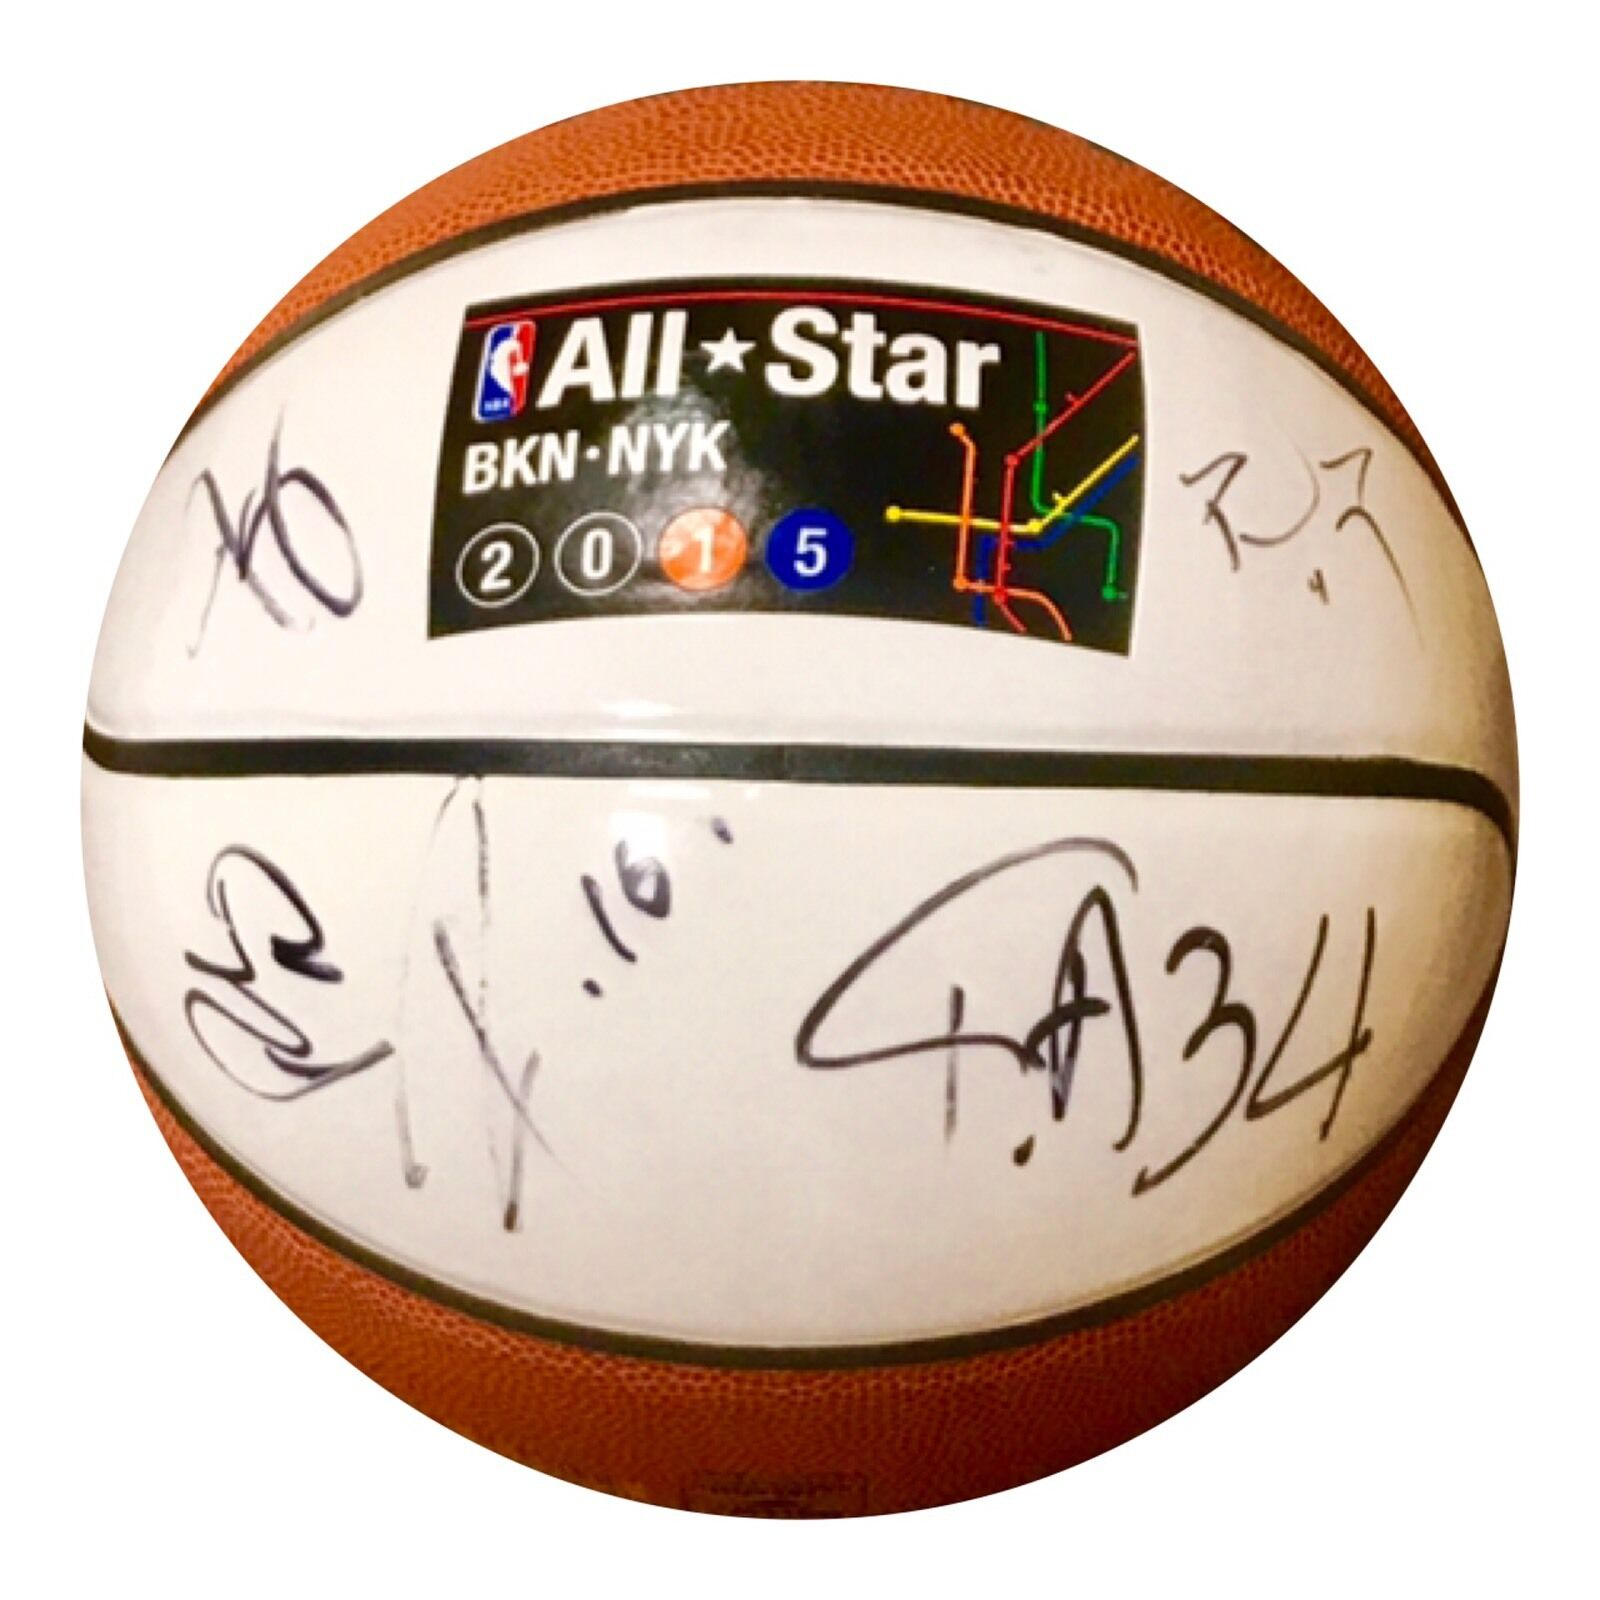 2015 All Star Weekend Authentic Signed Basketball - GIANNIS GASOL THOMAS ETC - Top Notch Signatures LLC